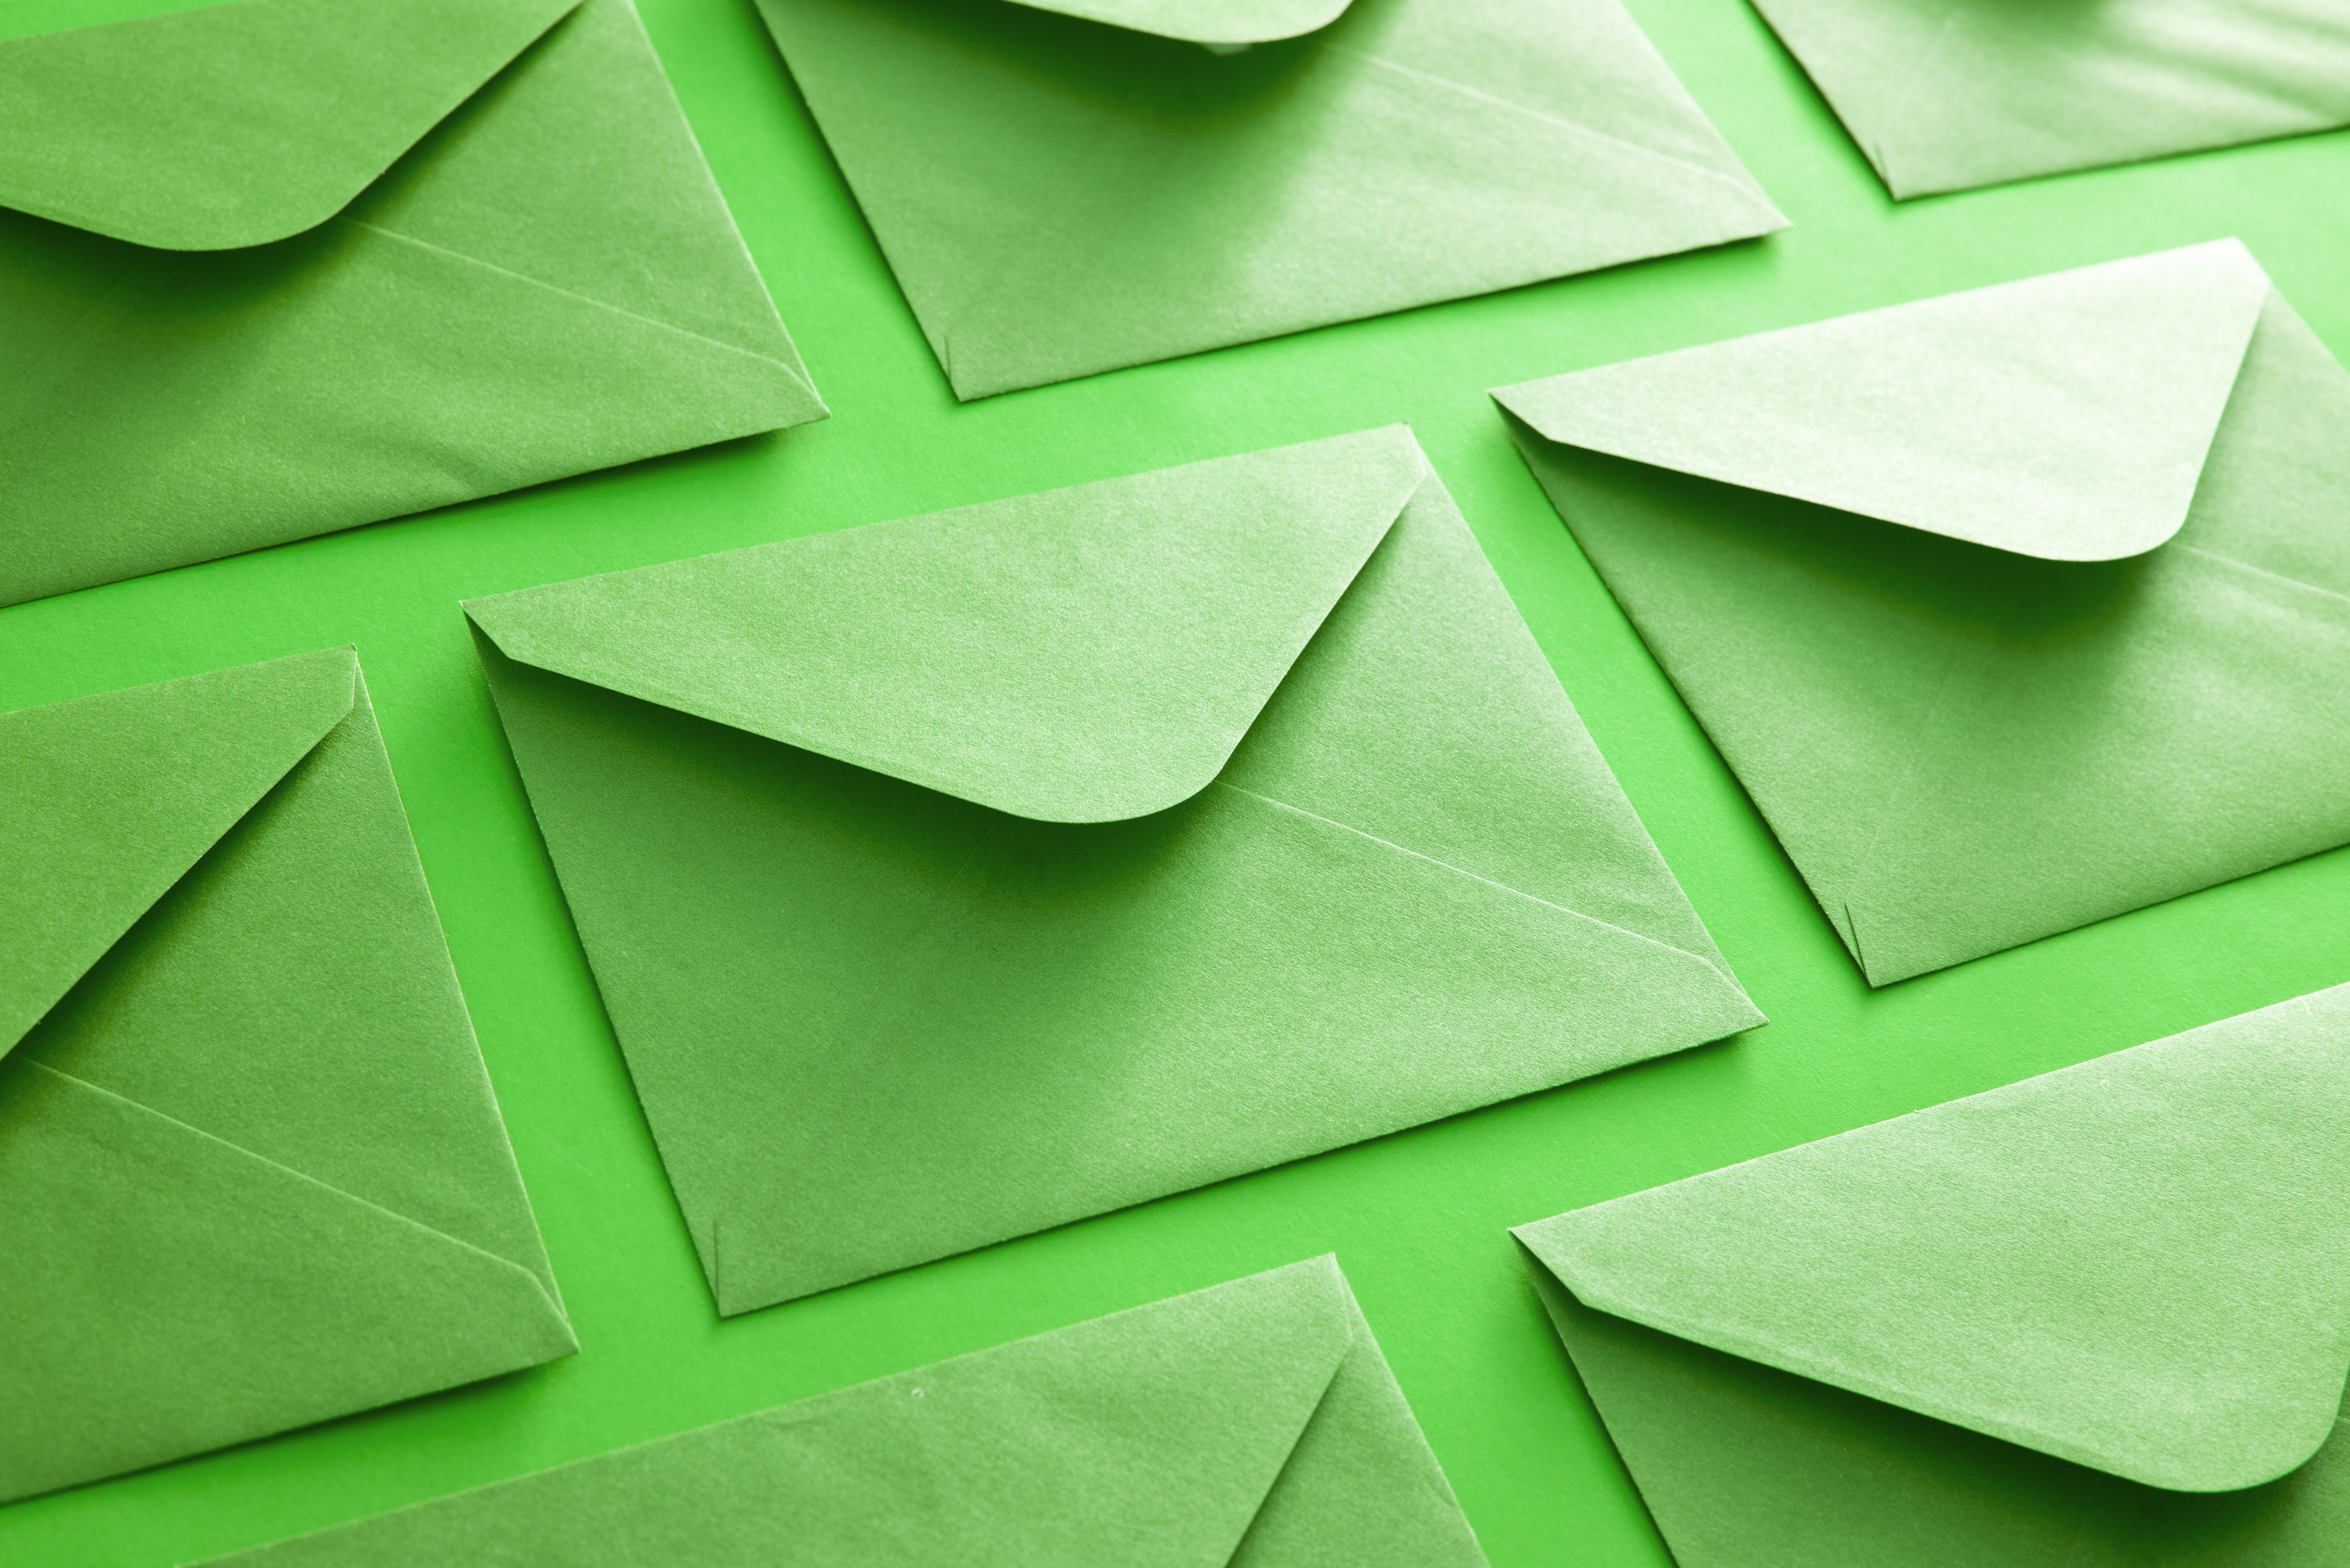 photo of colorful green envelope background free christmas images